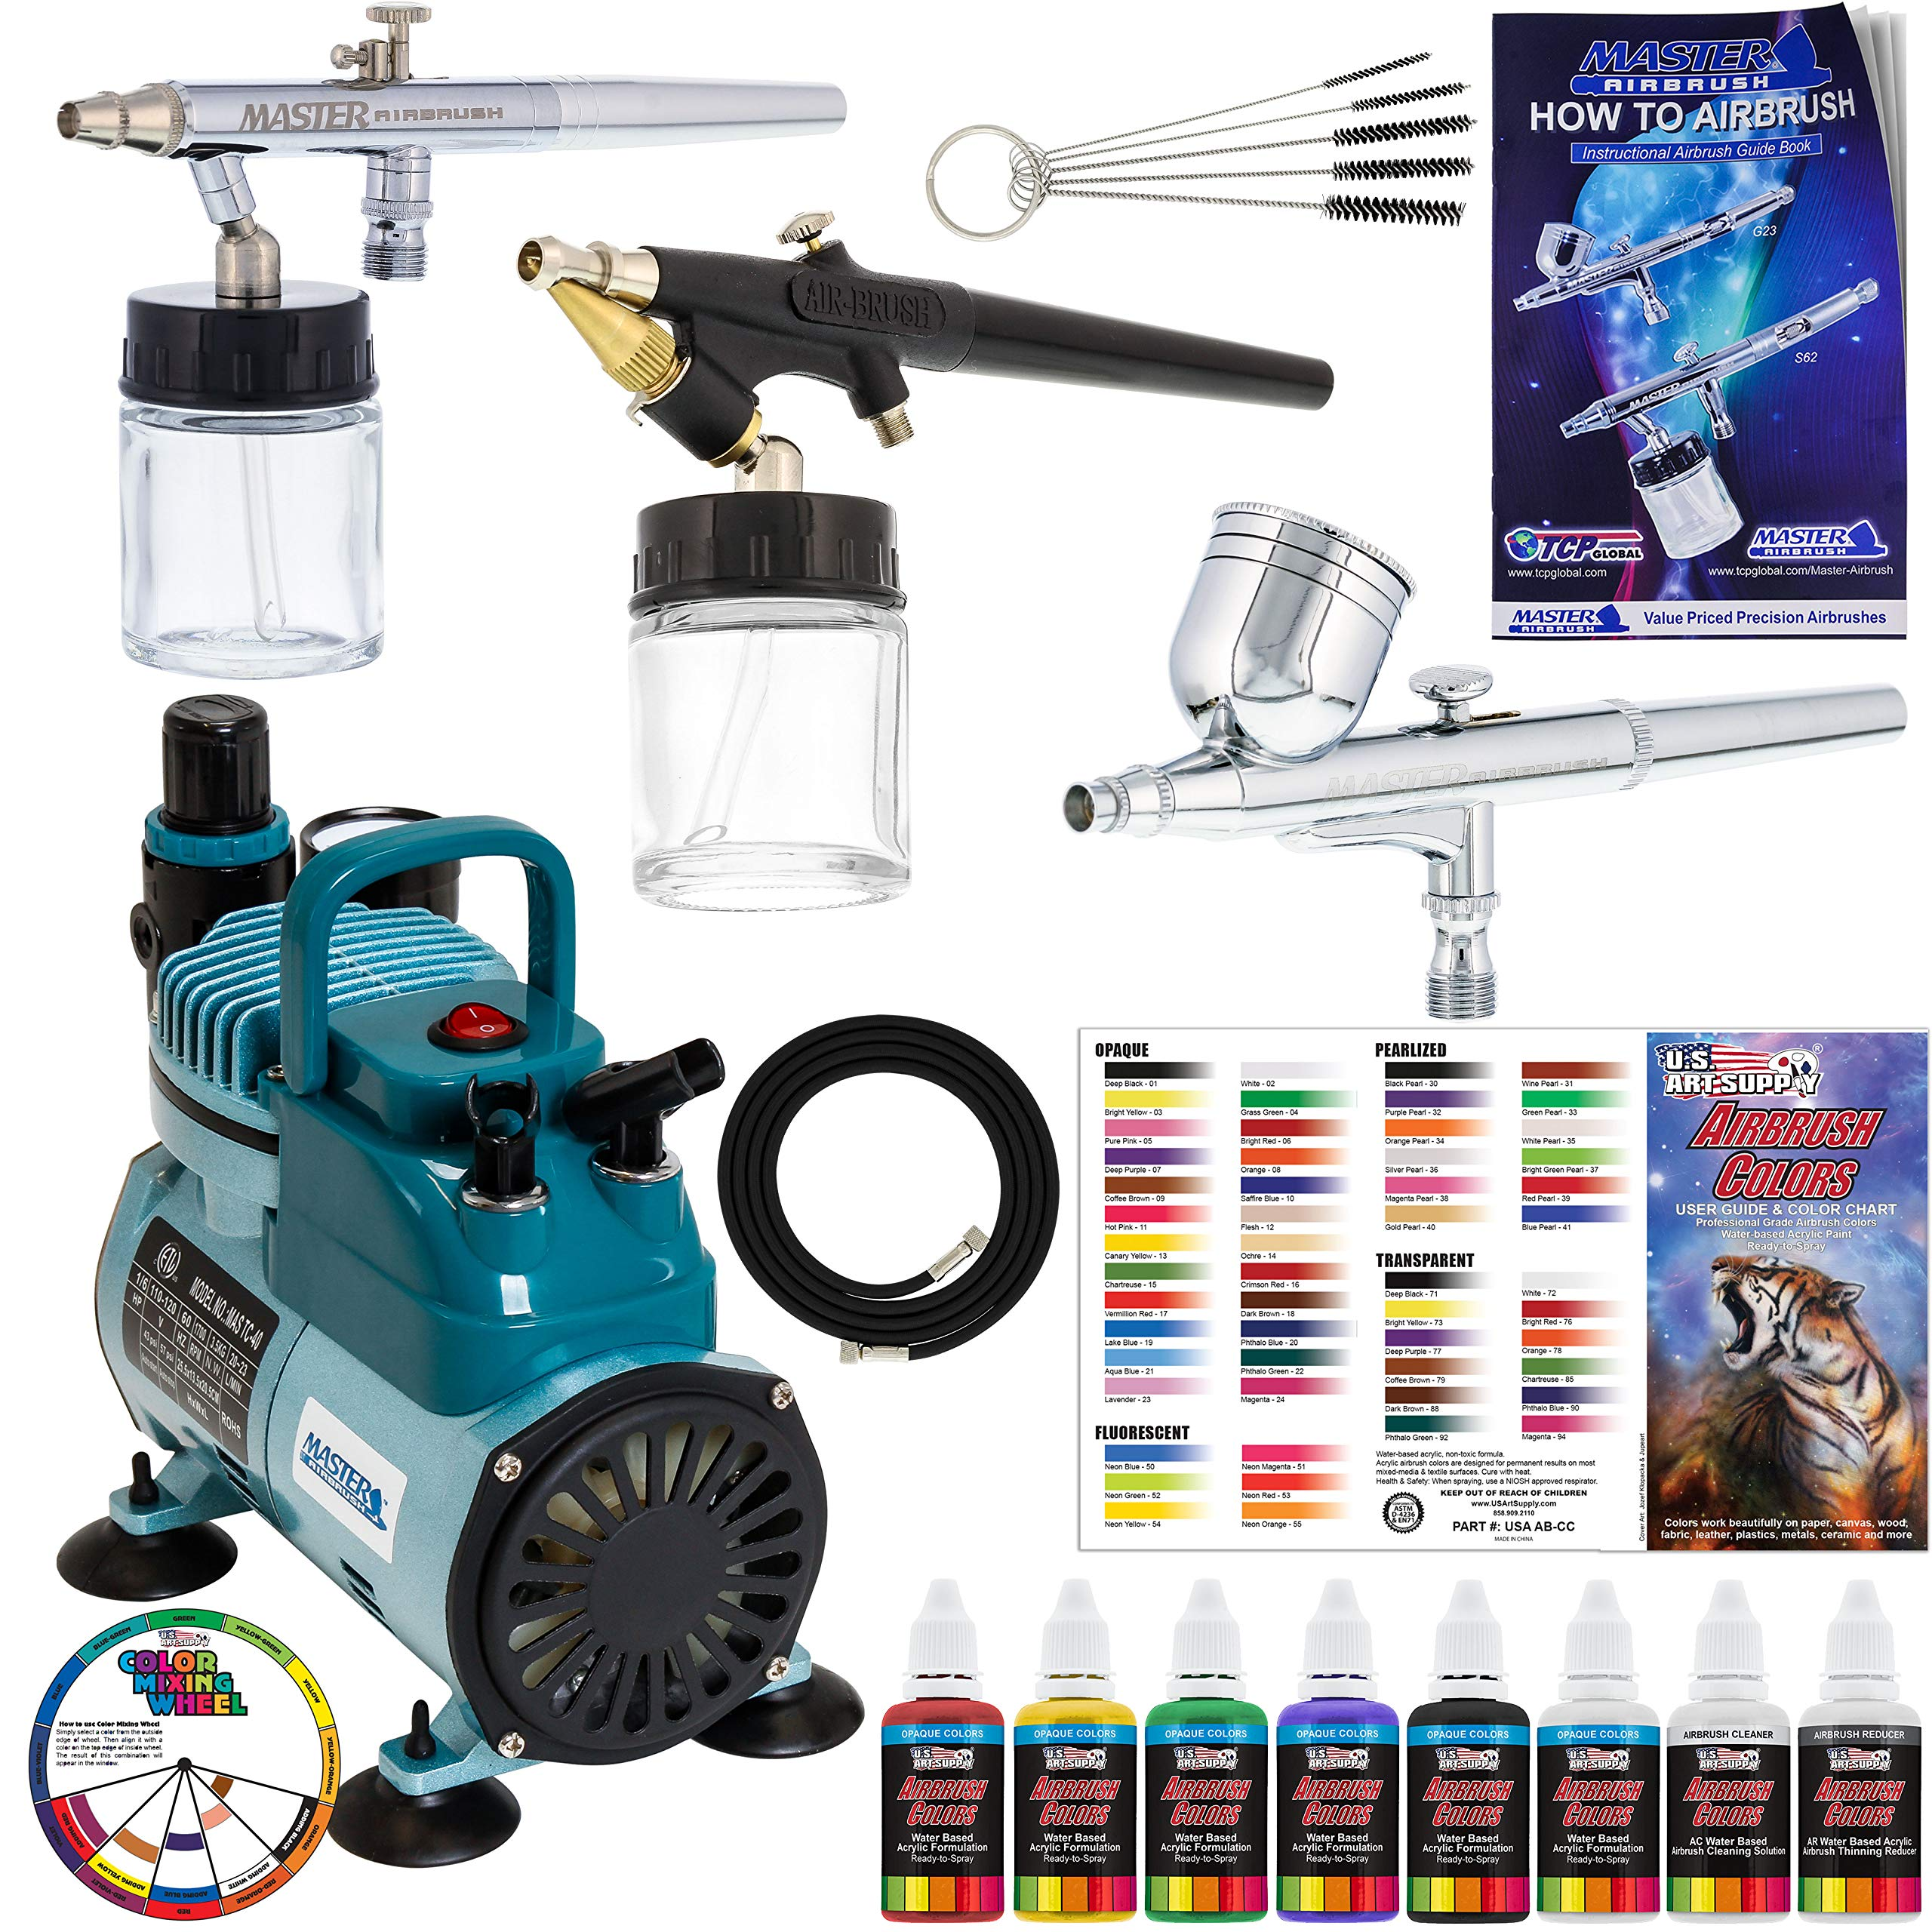 Master Pro Airbrush Multi-Purpose Airbrushing System with 3 Airbrushes, 6 U.S. Art Supply Primary Colors Acrylic Paint Set - Cool Running Air Compressor - Color Mixing Wheel, Usage Guide, Brushes